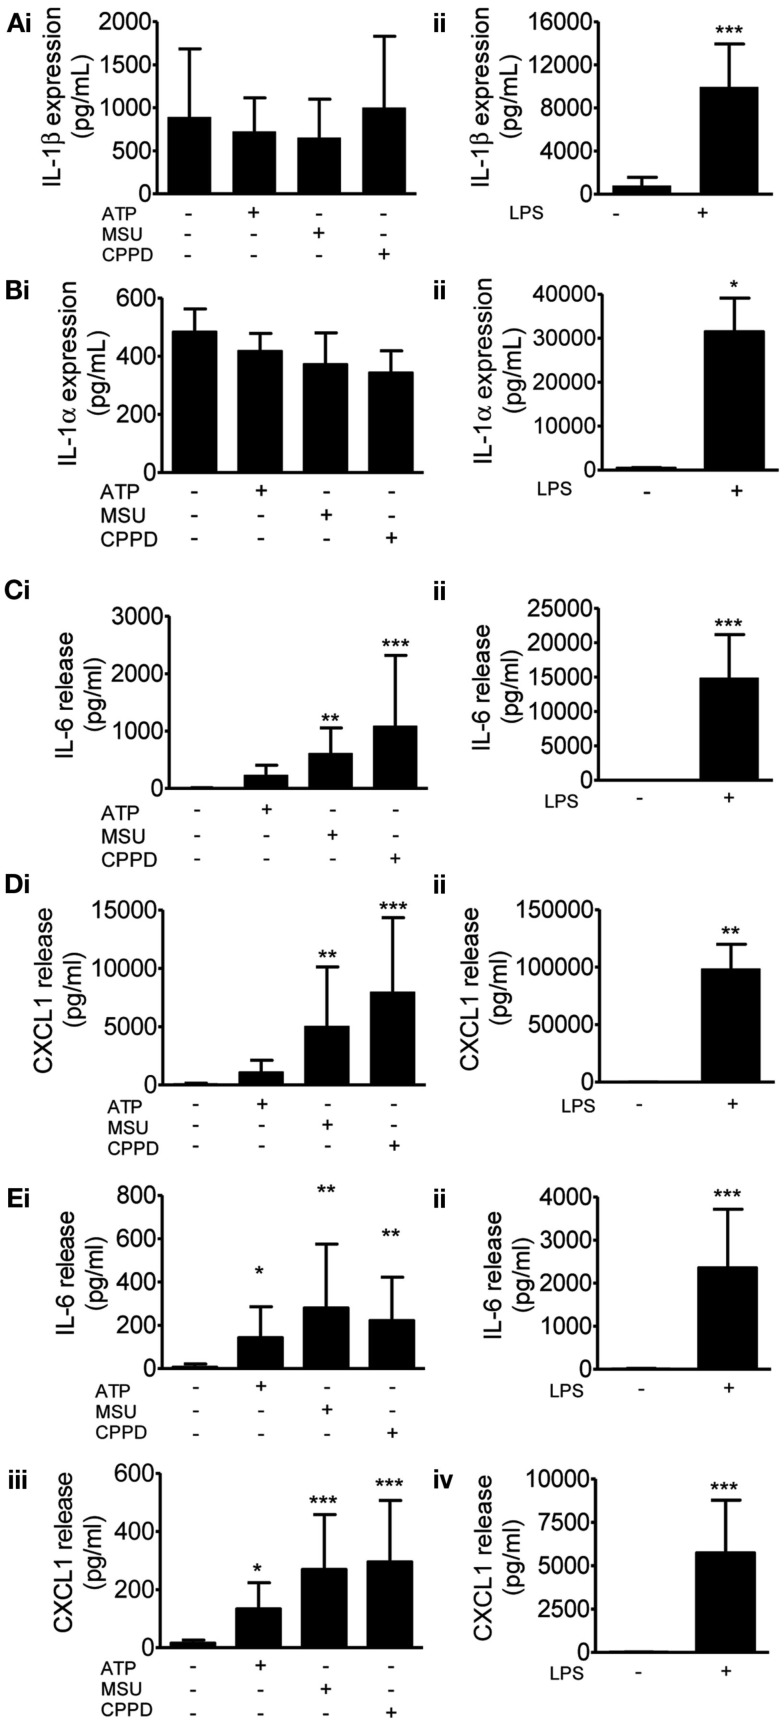 Effects of DAMPs on pro-inflammatory protein levels in cultured mixed glia . Protein levels of pro-inflammatory mediators were measured by specific ELISAs after 24 h (A–D) or 4 h (E) exposure to the NLRP3-activating DAMPs ATP (5 mM), MSU, and CPPD [both 250 μg/ml; (Ai) ] or the PAMP LPS [1 μg/ml; (Aii) ]. The proteins analyzed were IL-1β (A) , IL-1α (B) , IL-6 (C,E) , CXCL1 (D,E) . Data are pooled samples from at least five separate experiments. *** P